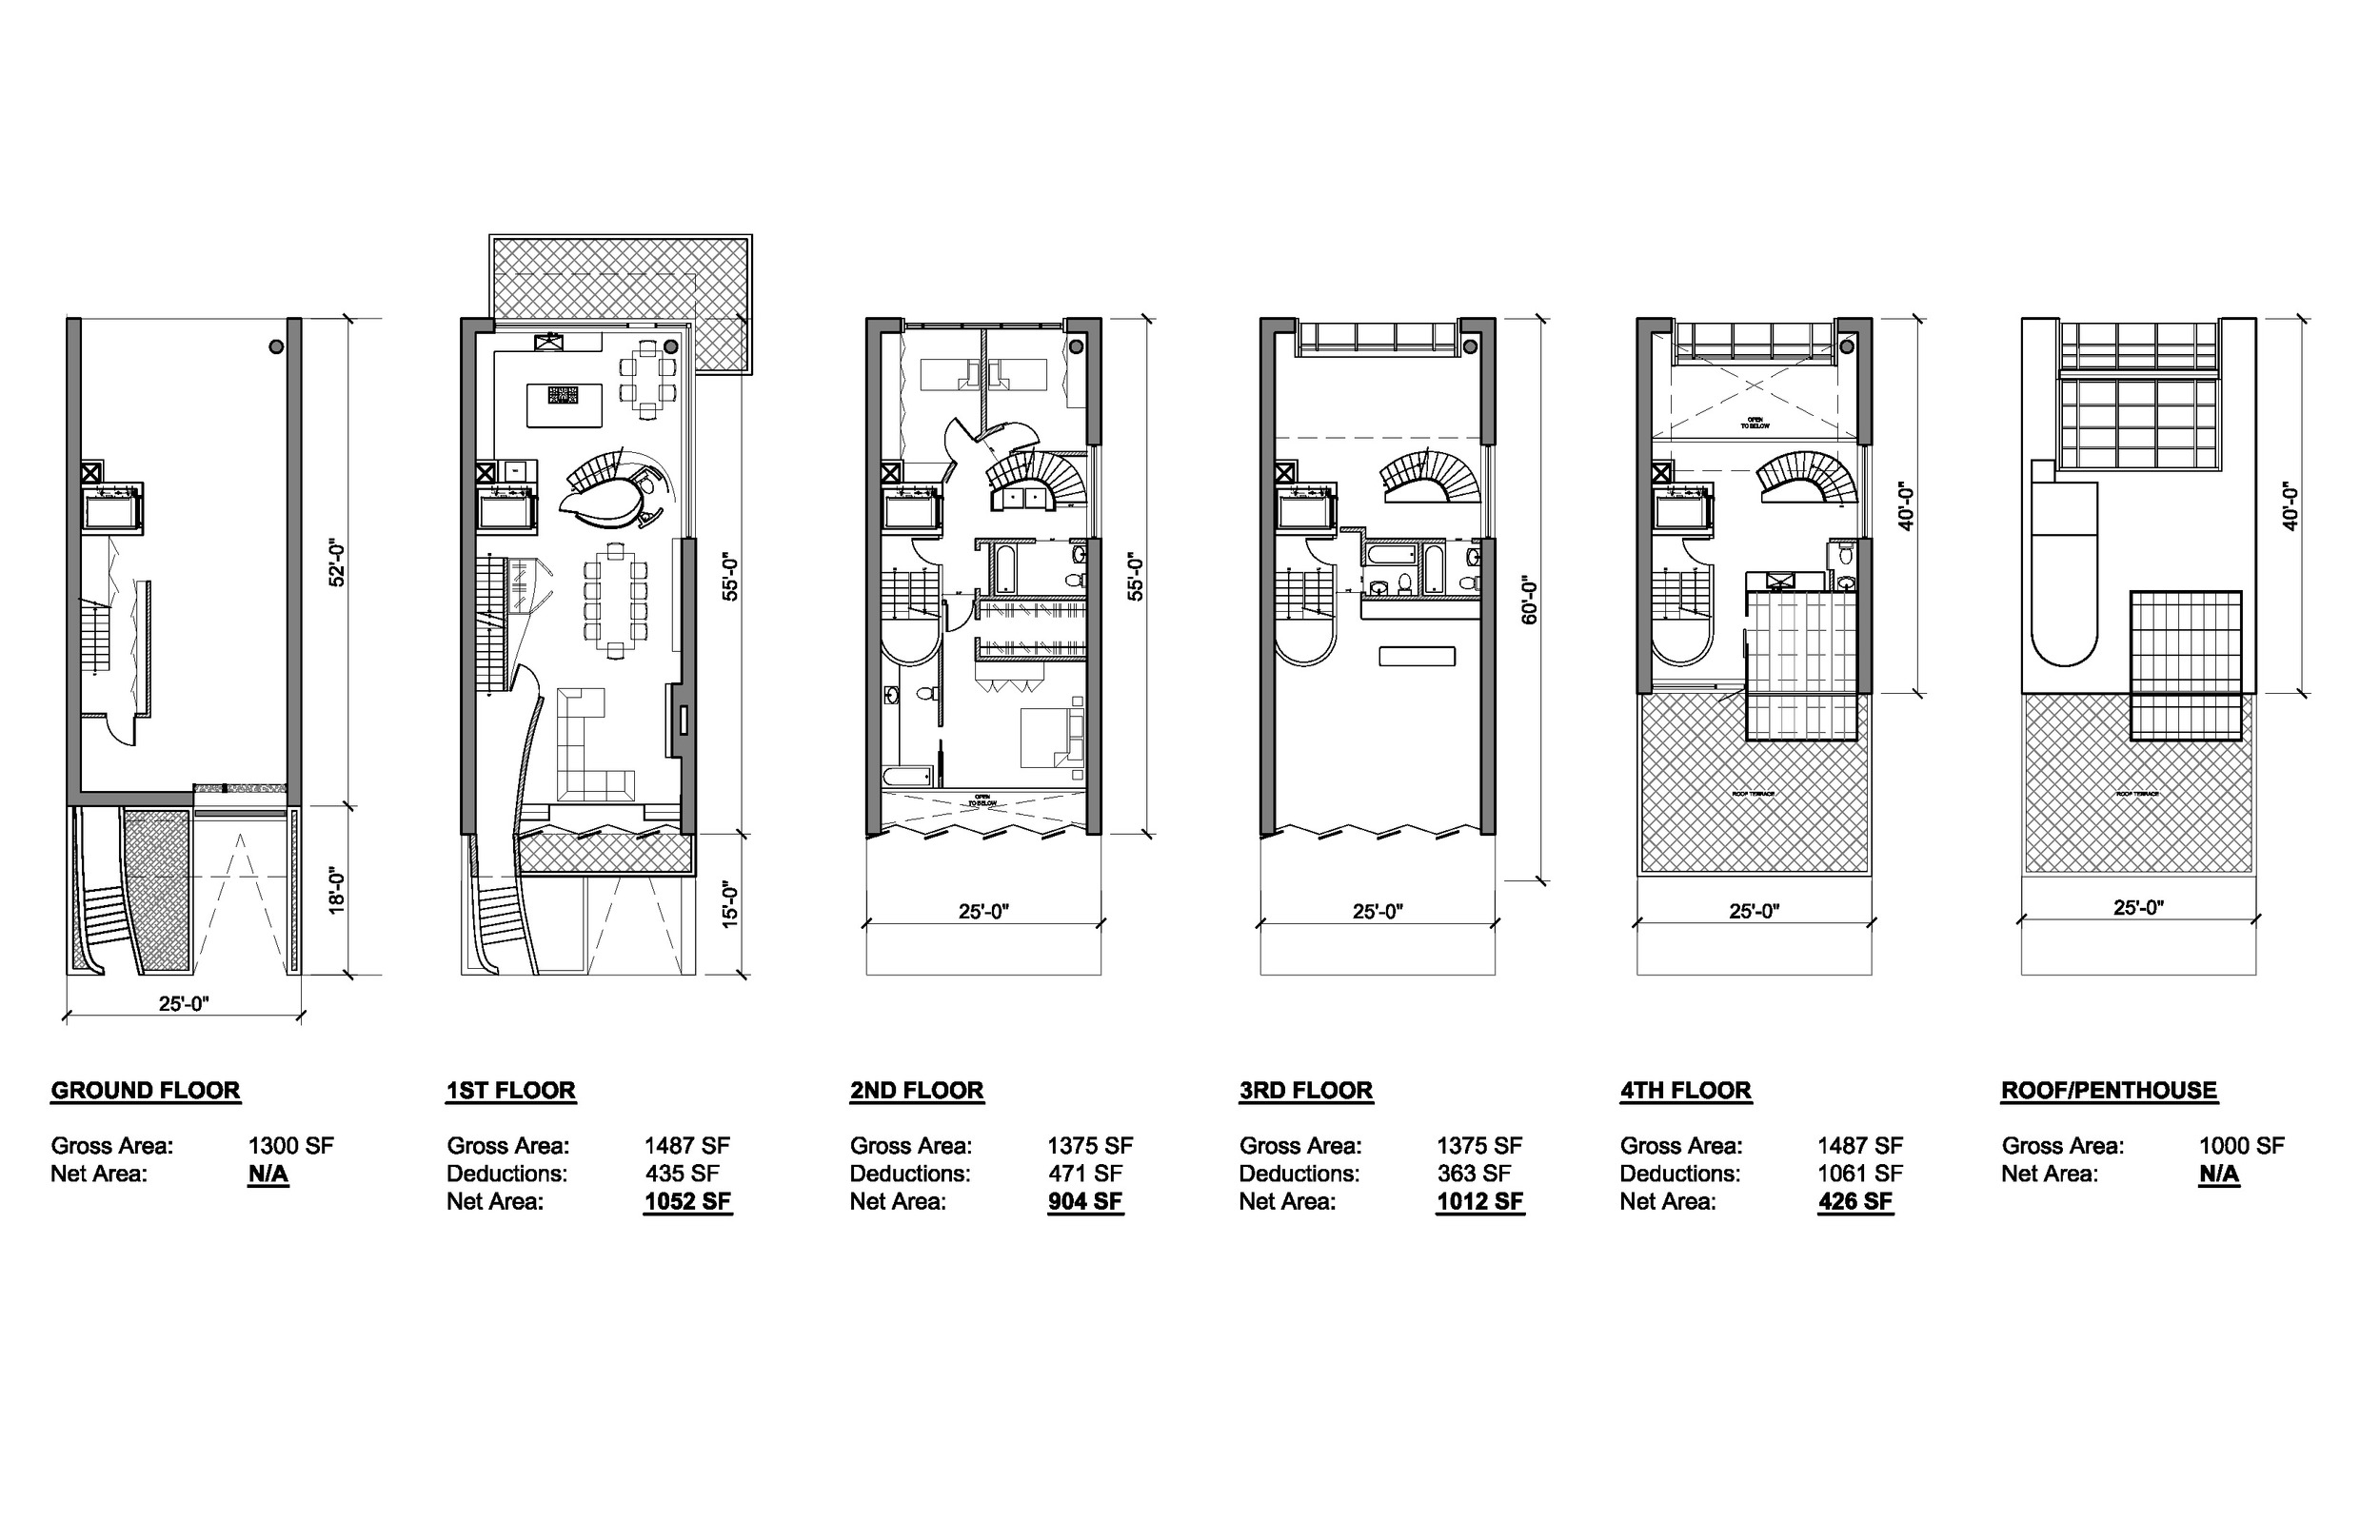 104 King Street - Floor Area Calculations x.jpg